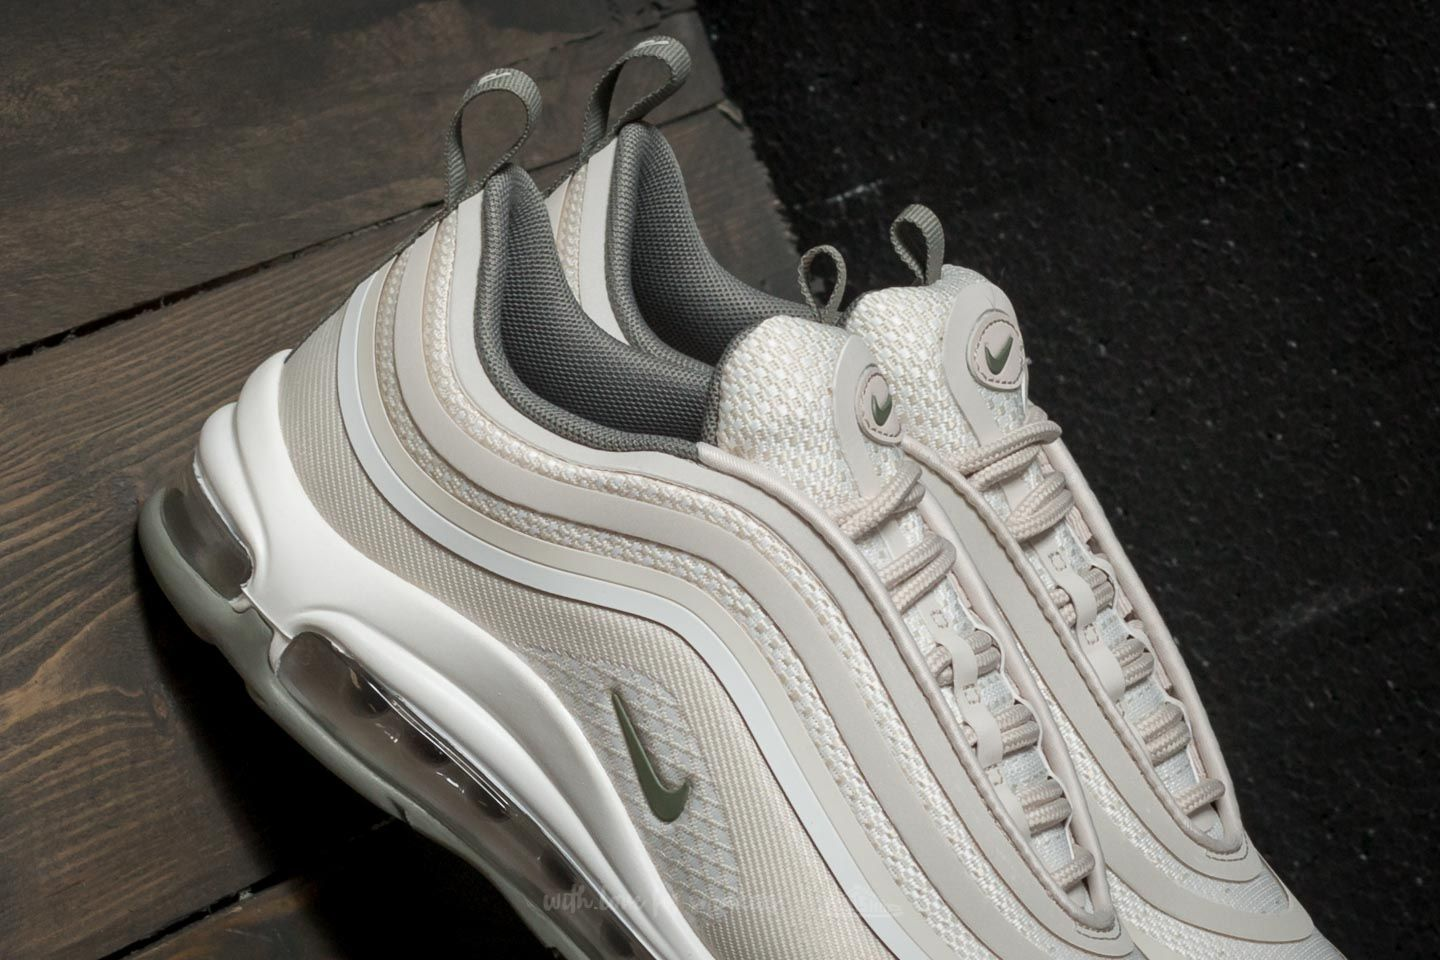 Nike Wmns Air Max 97 Ultra '17 Light Orewood Brown Dark Stucco | Footshop